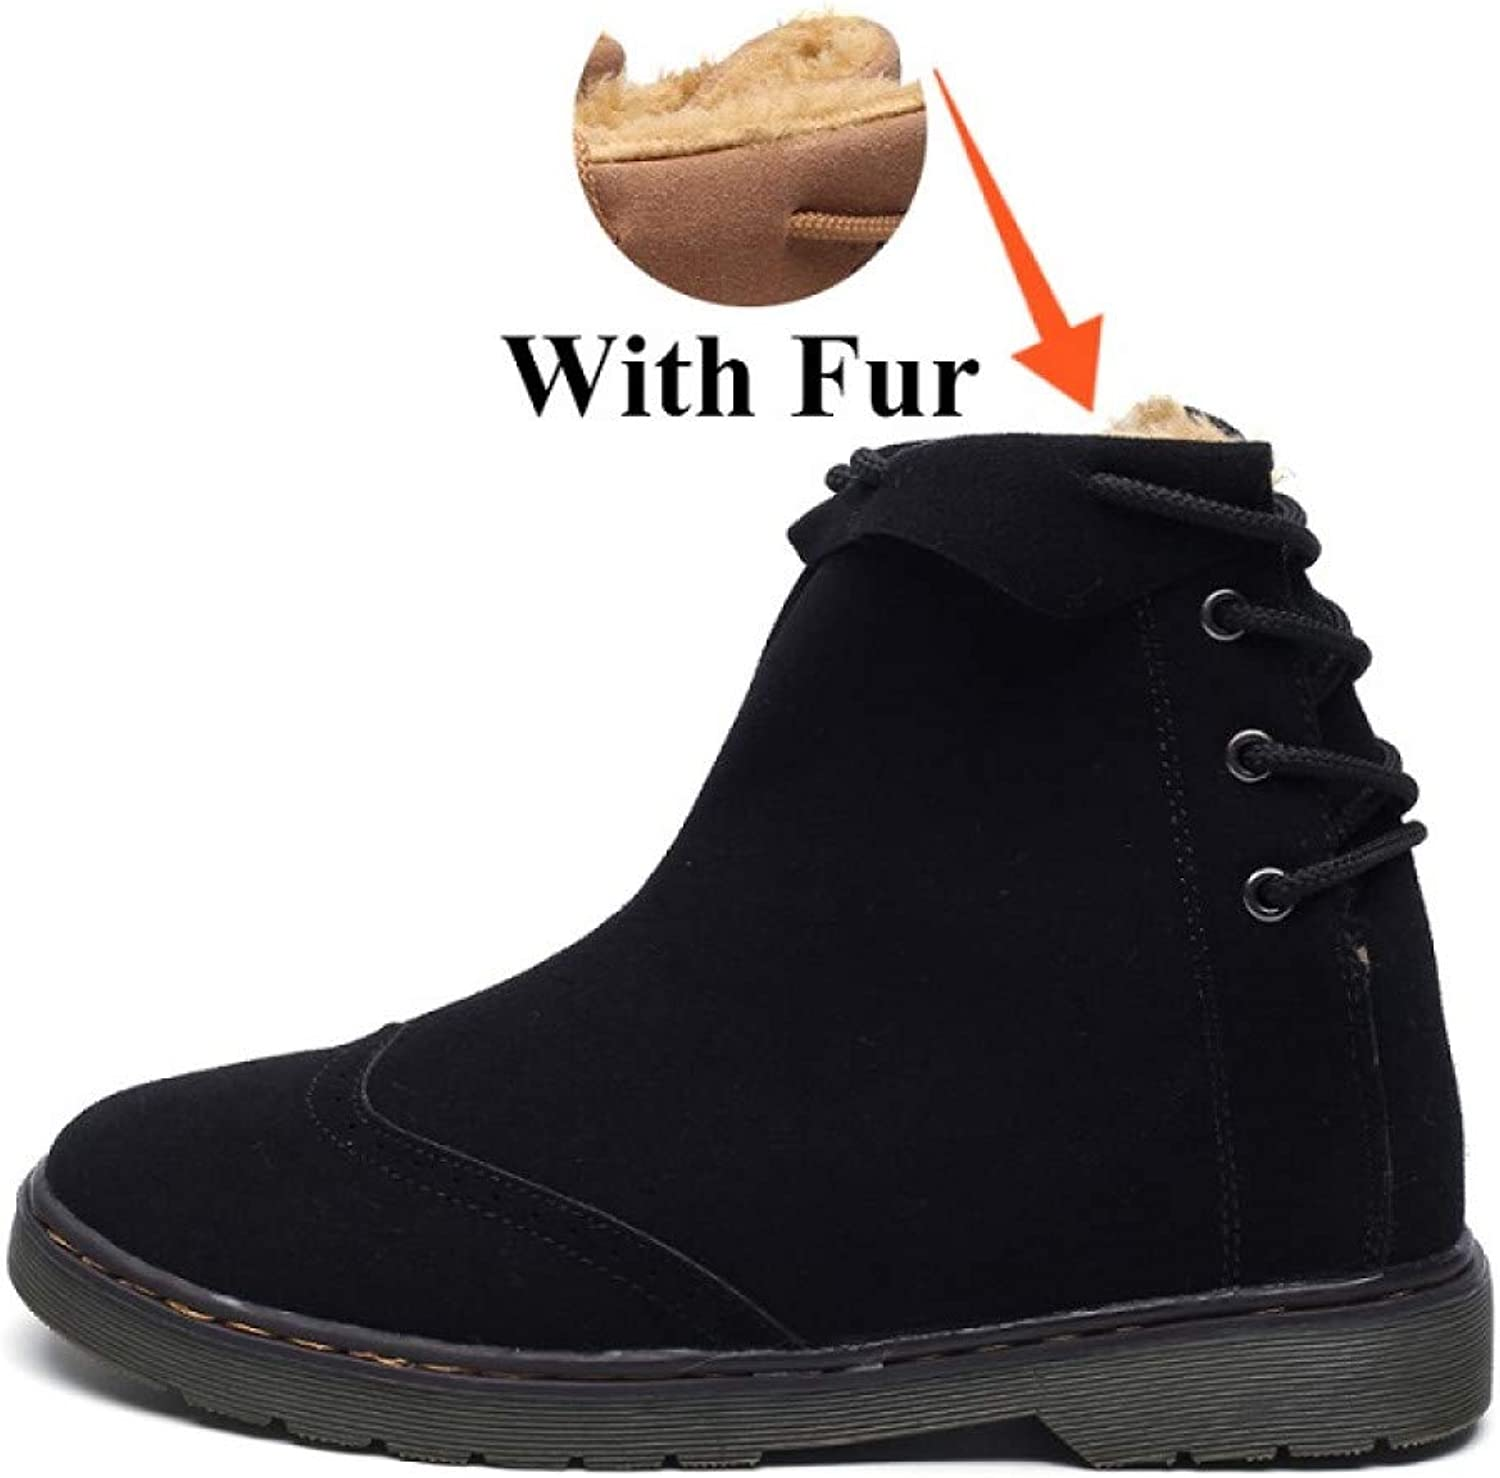 FHCGMX New Winter Fashion Male shoes For Men Adult With Warm Snow Boots Casual Non-Slip Sneakers Footwear Ankle Boots